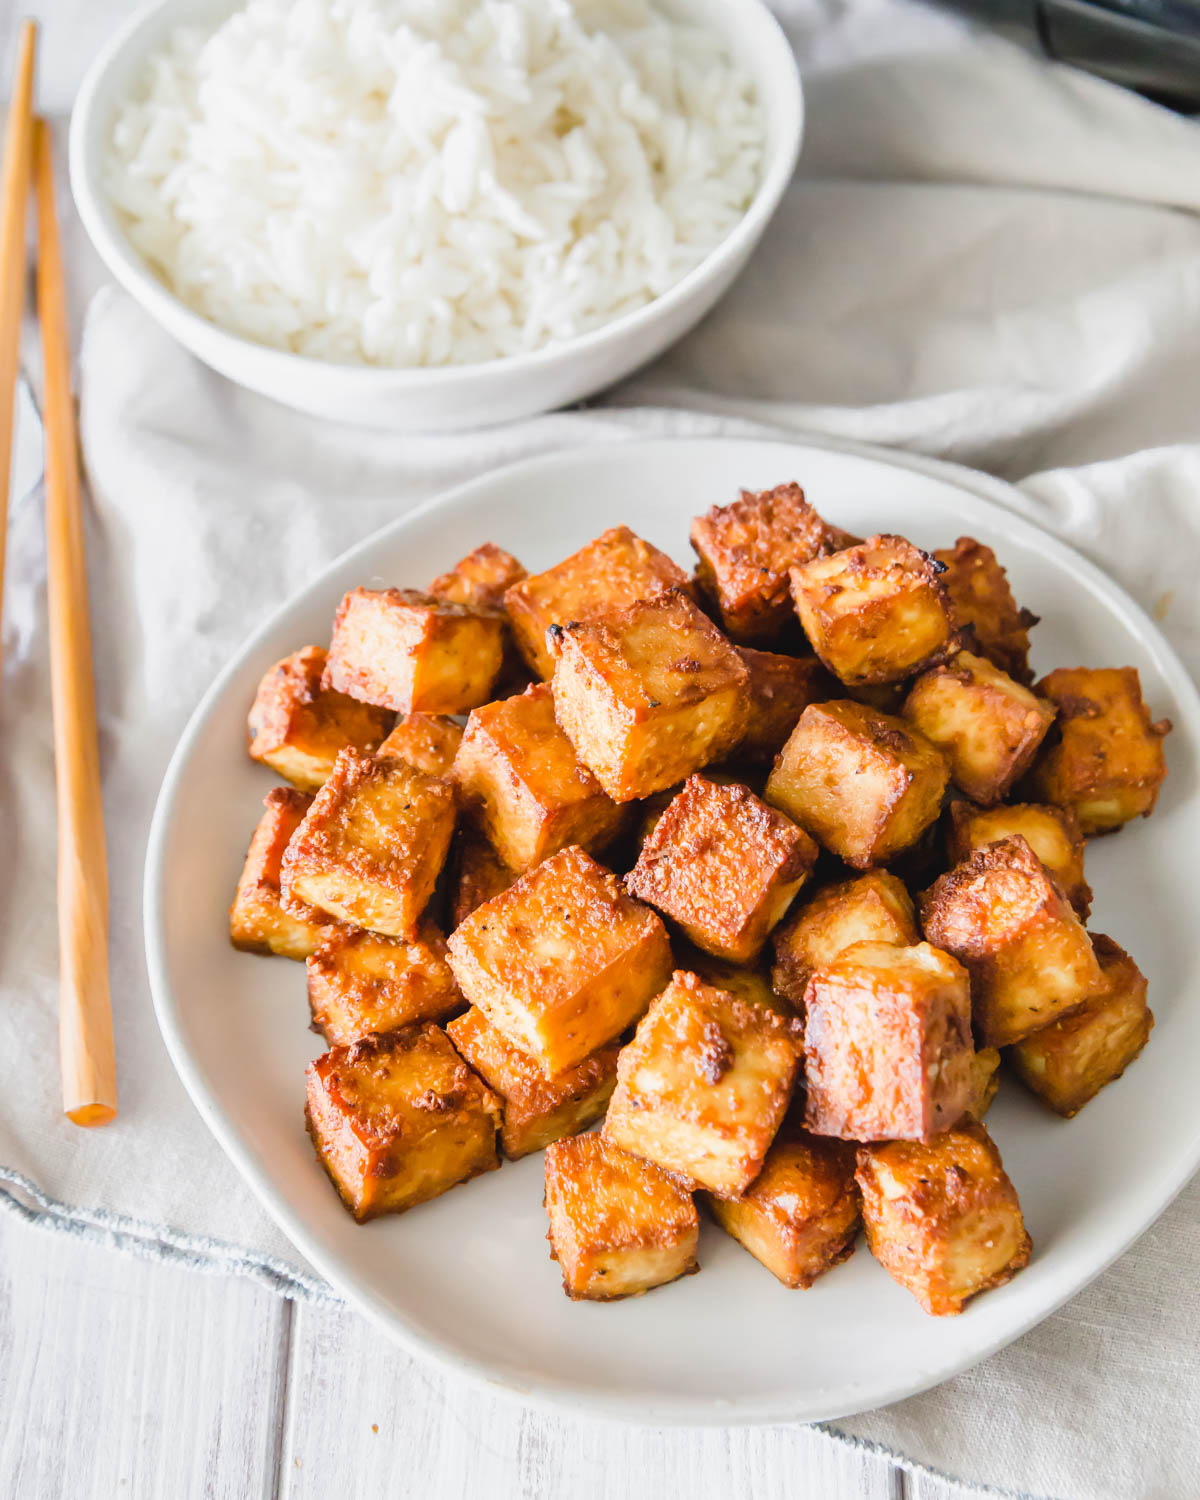 This air fryer tofu recipe results in the crispiest golden brown tofu in just 15 minutes!